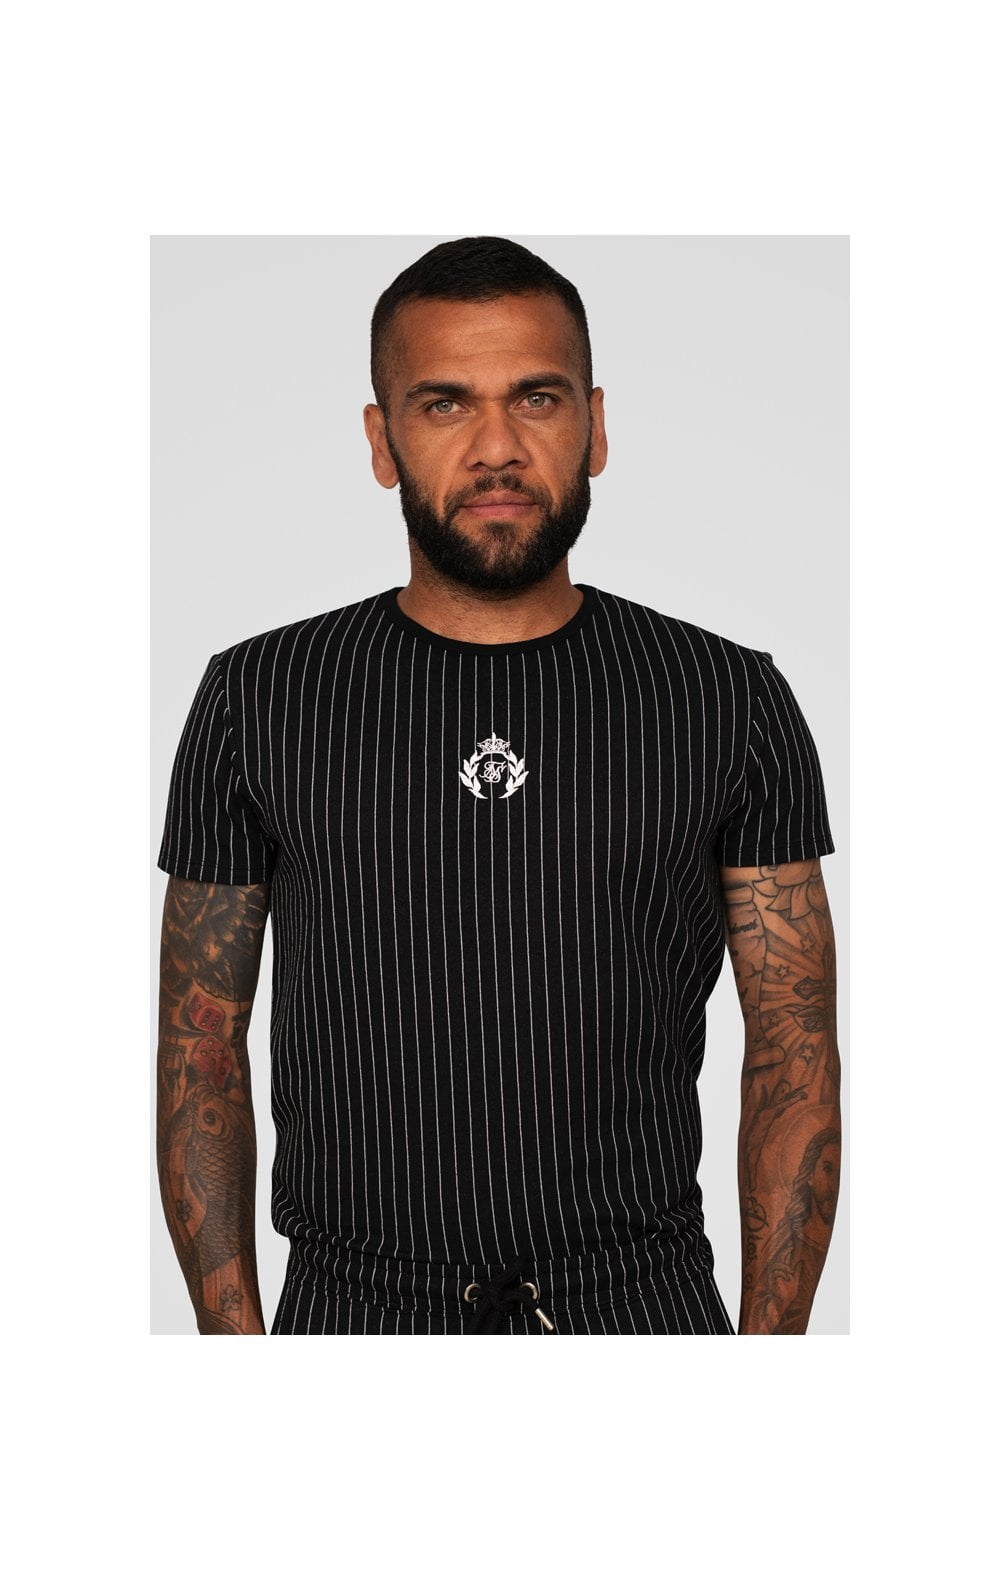 SikSilk x Dani Alves Curved Hem Gym Tee – Black & White